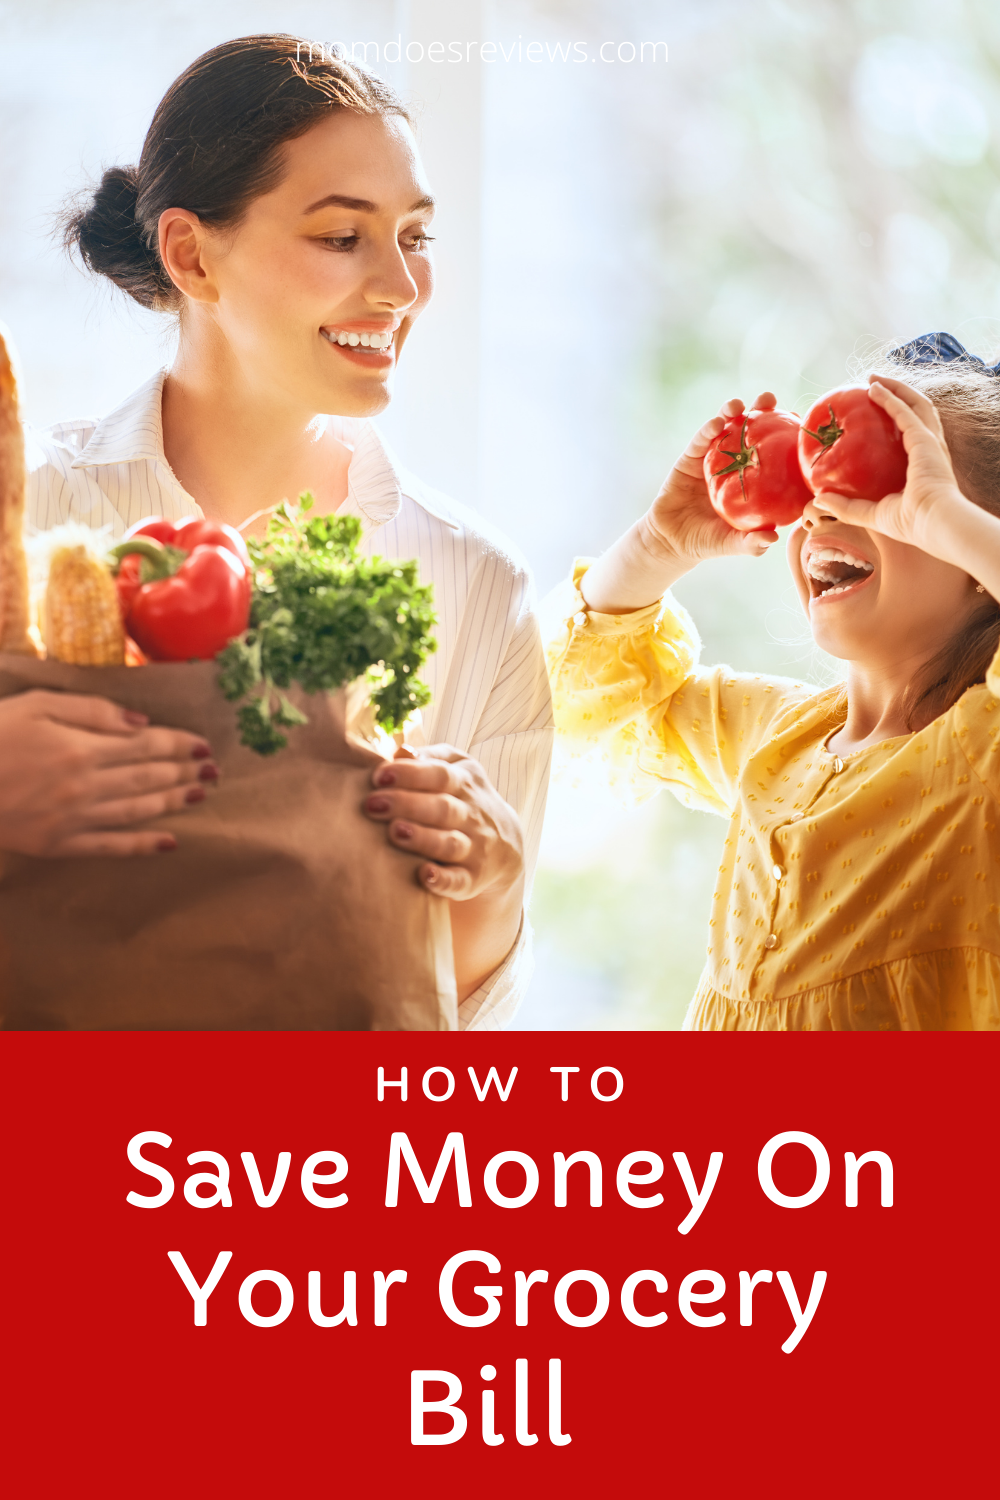 How to Save Money On Your Weekly Grocery Trip